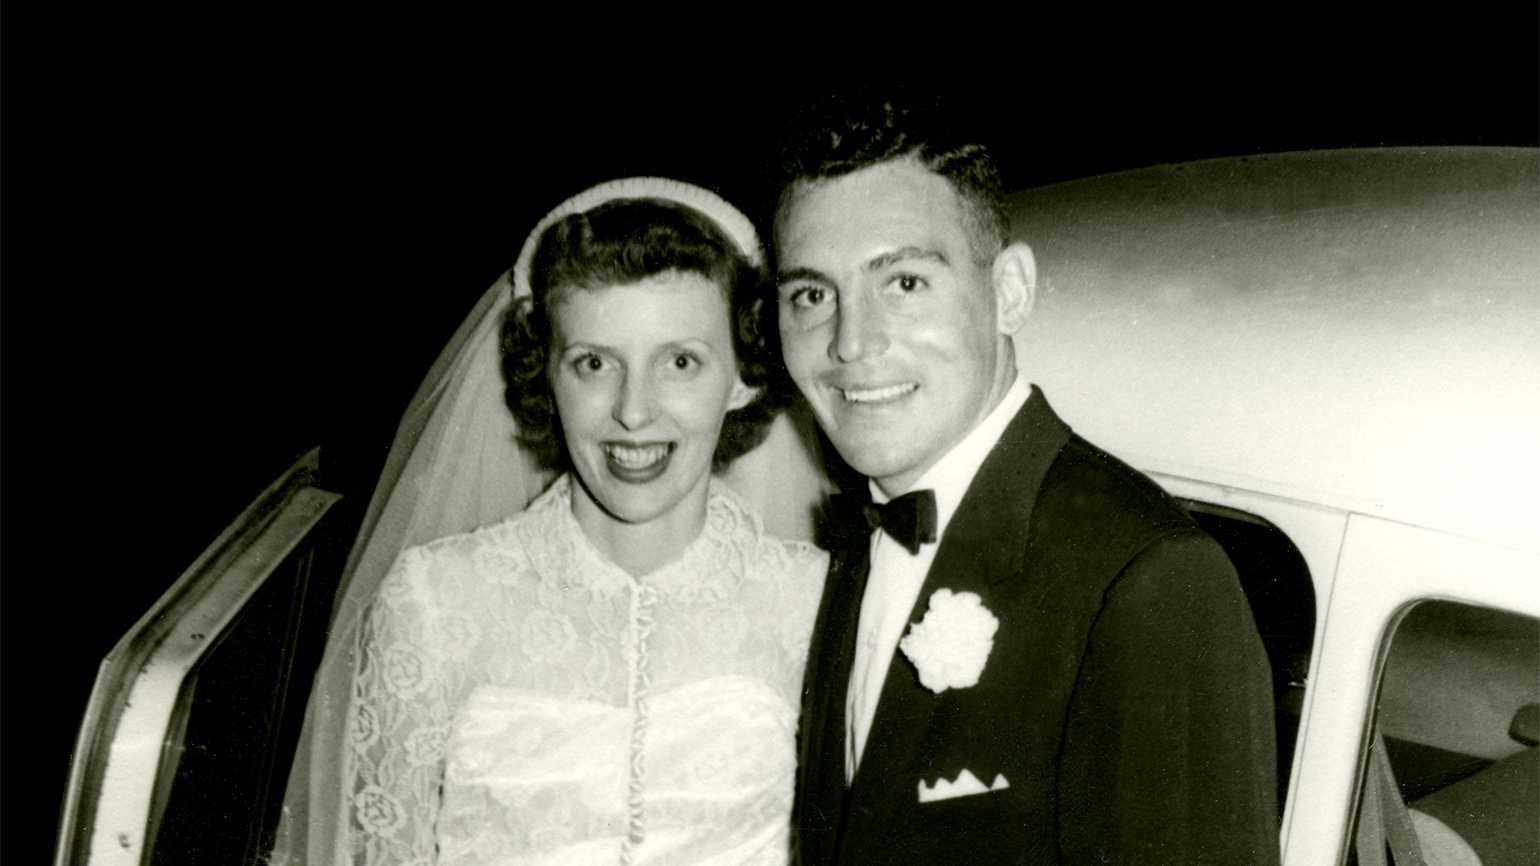 Karen and Lloyd Leveridge, on the evening of their wedding in 1954